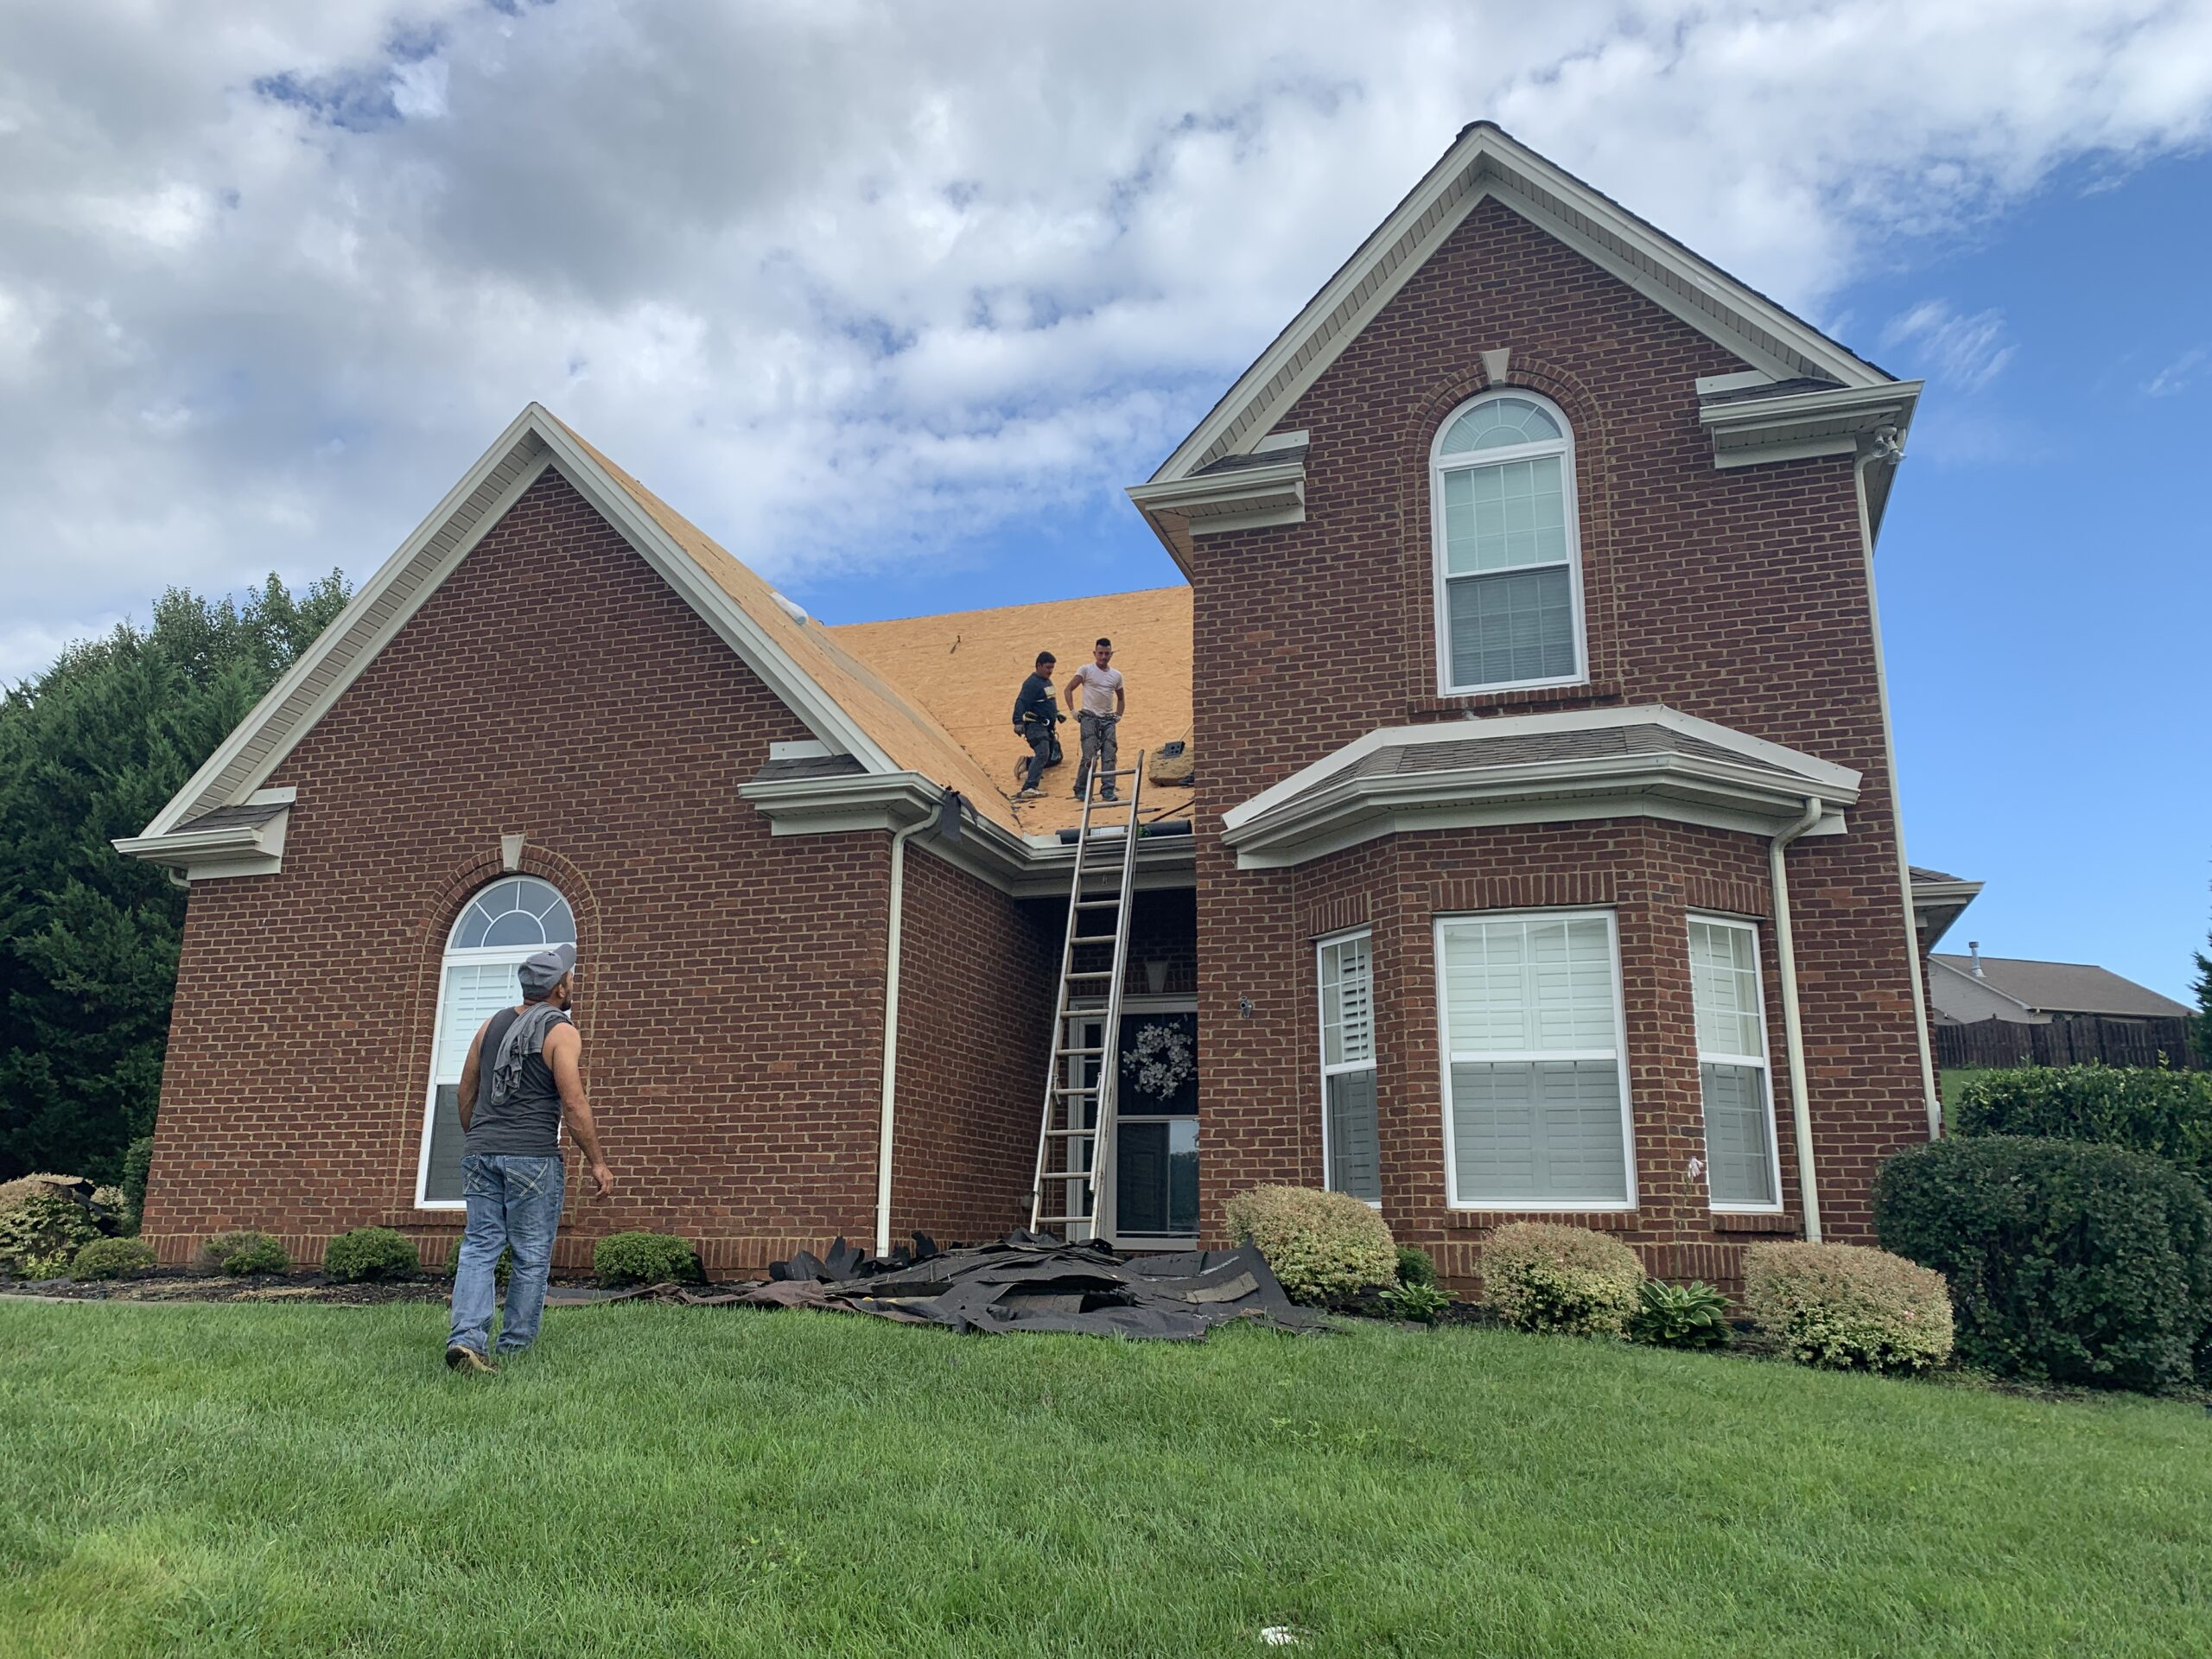 When installing a new roof system, installers should always remove all old roofing materials including shingles, felt and nails to ensure the best roof possible